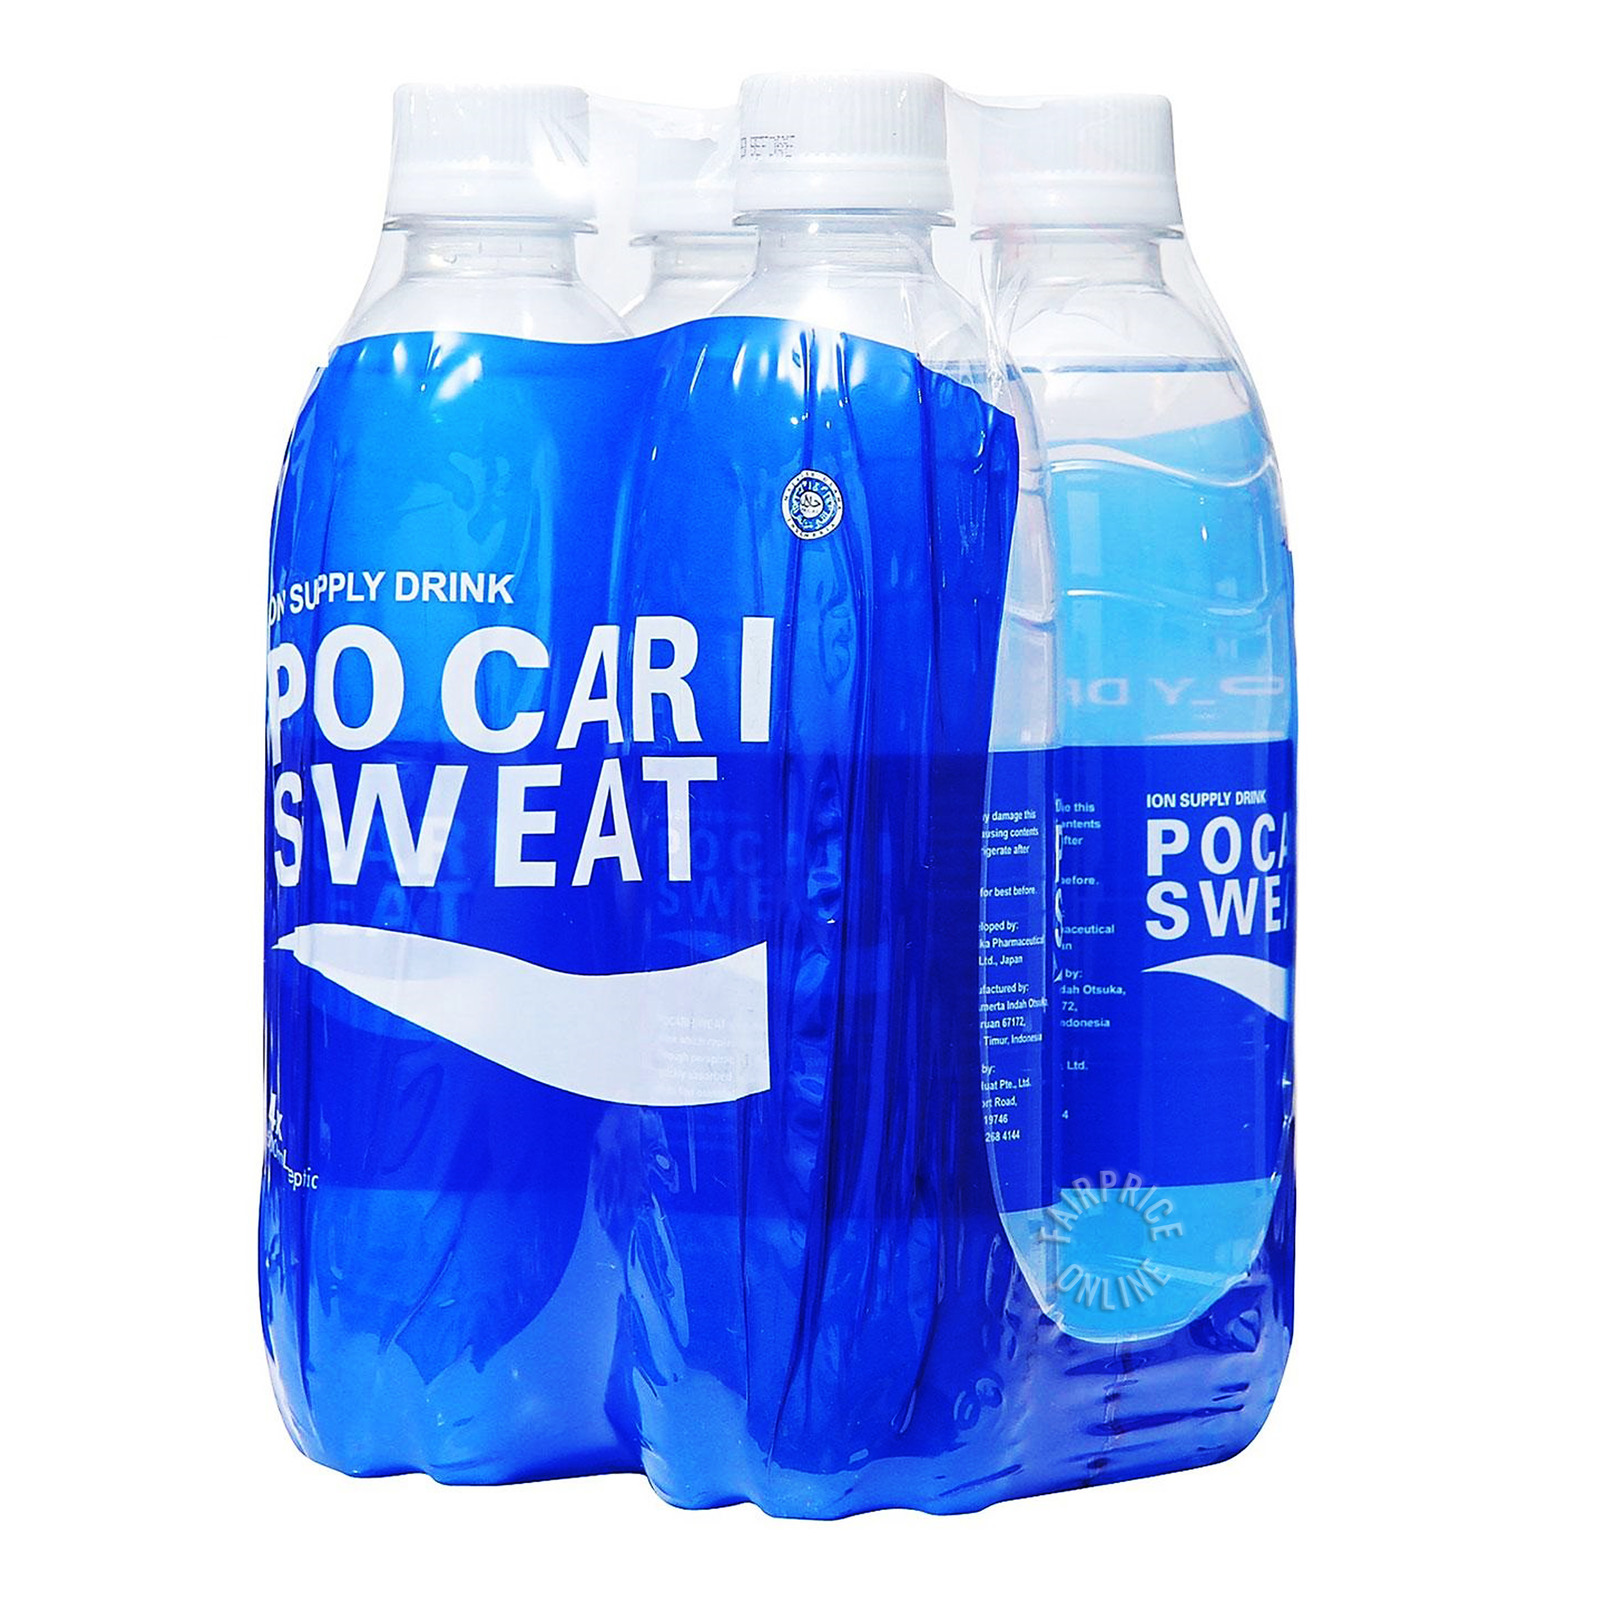 POCARI SWEAT Sweat Isotonic Drink 4sX500ml